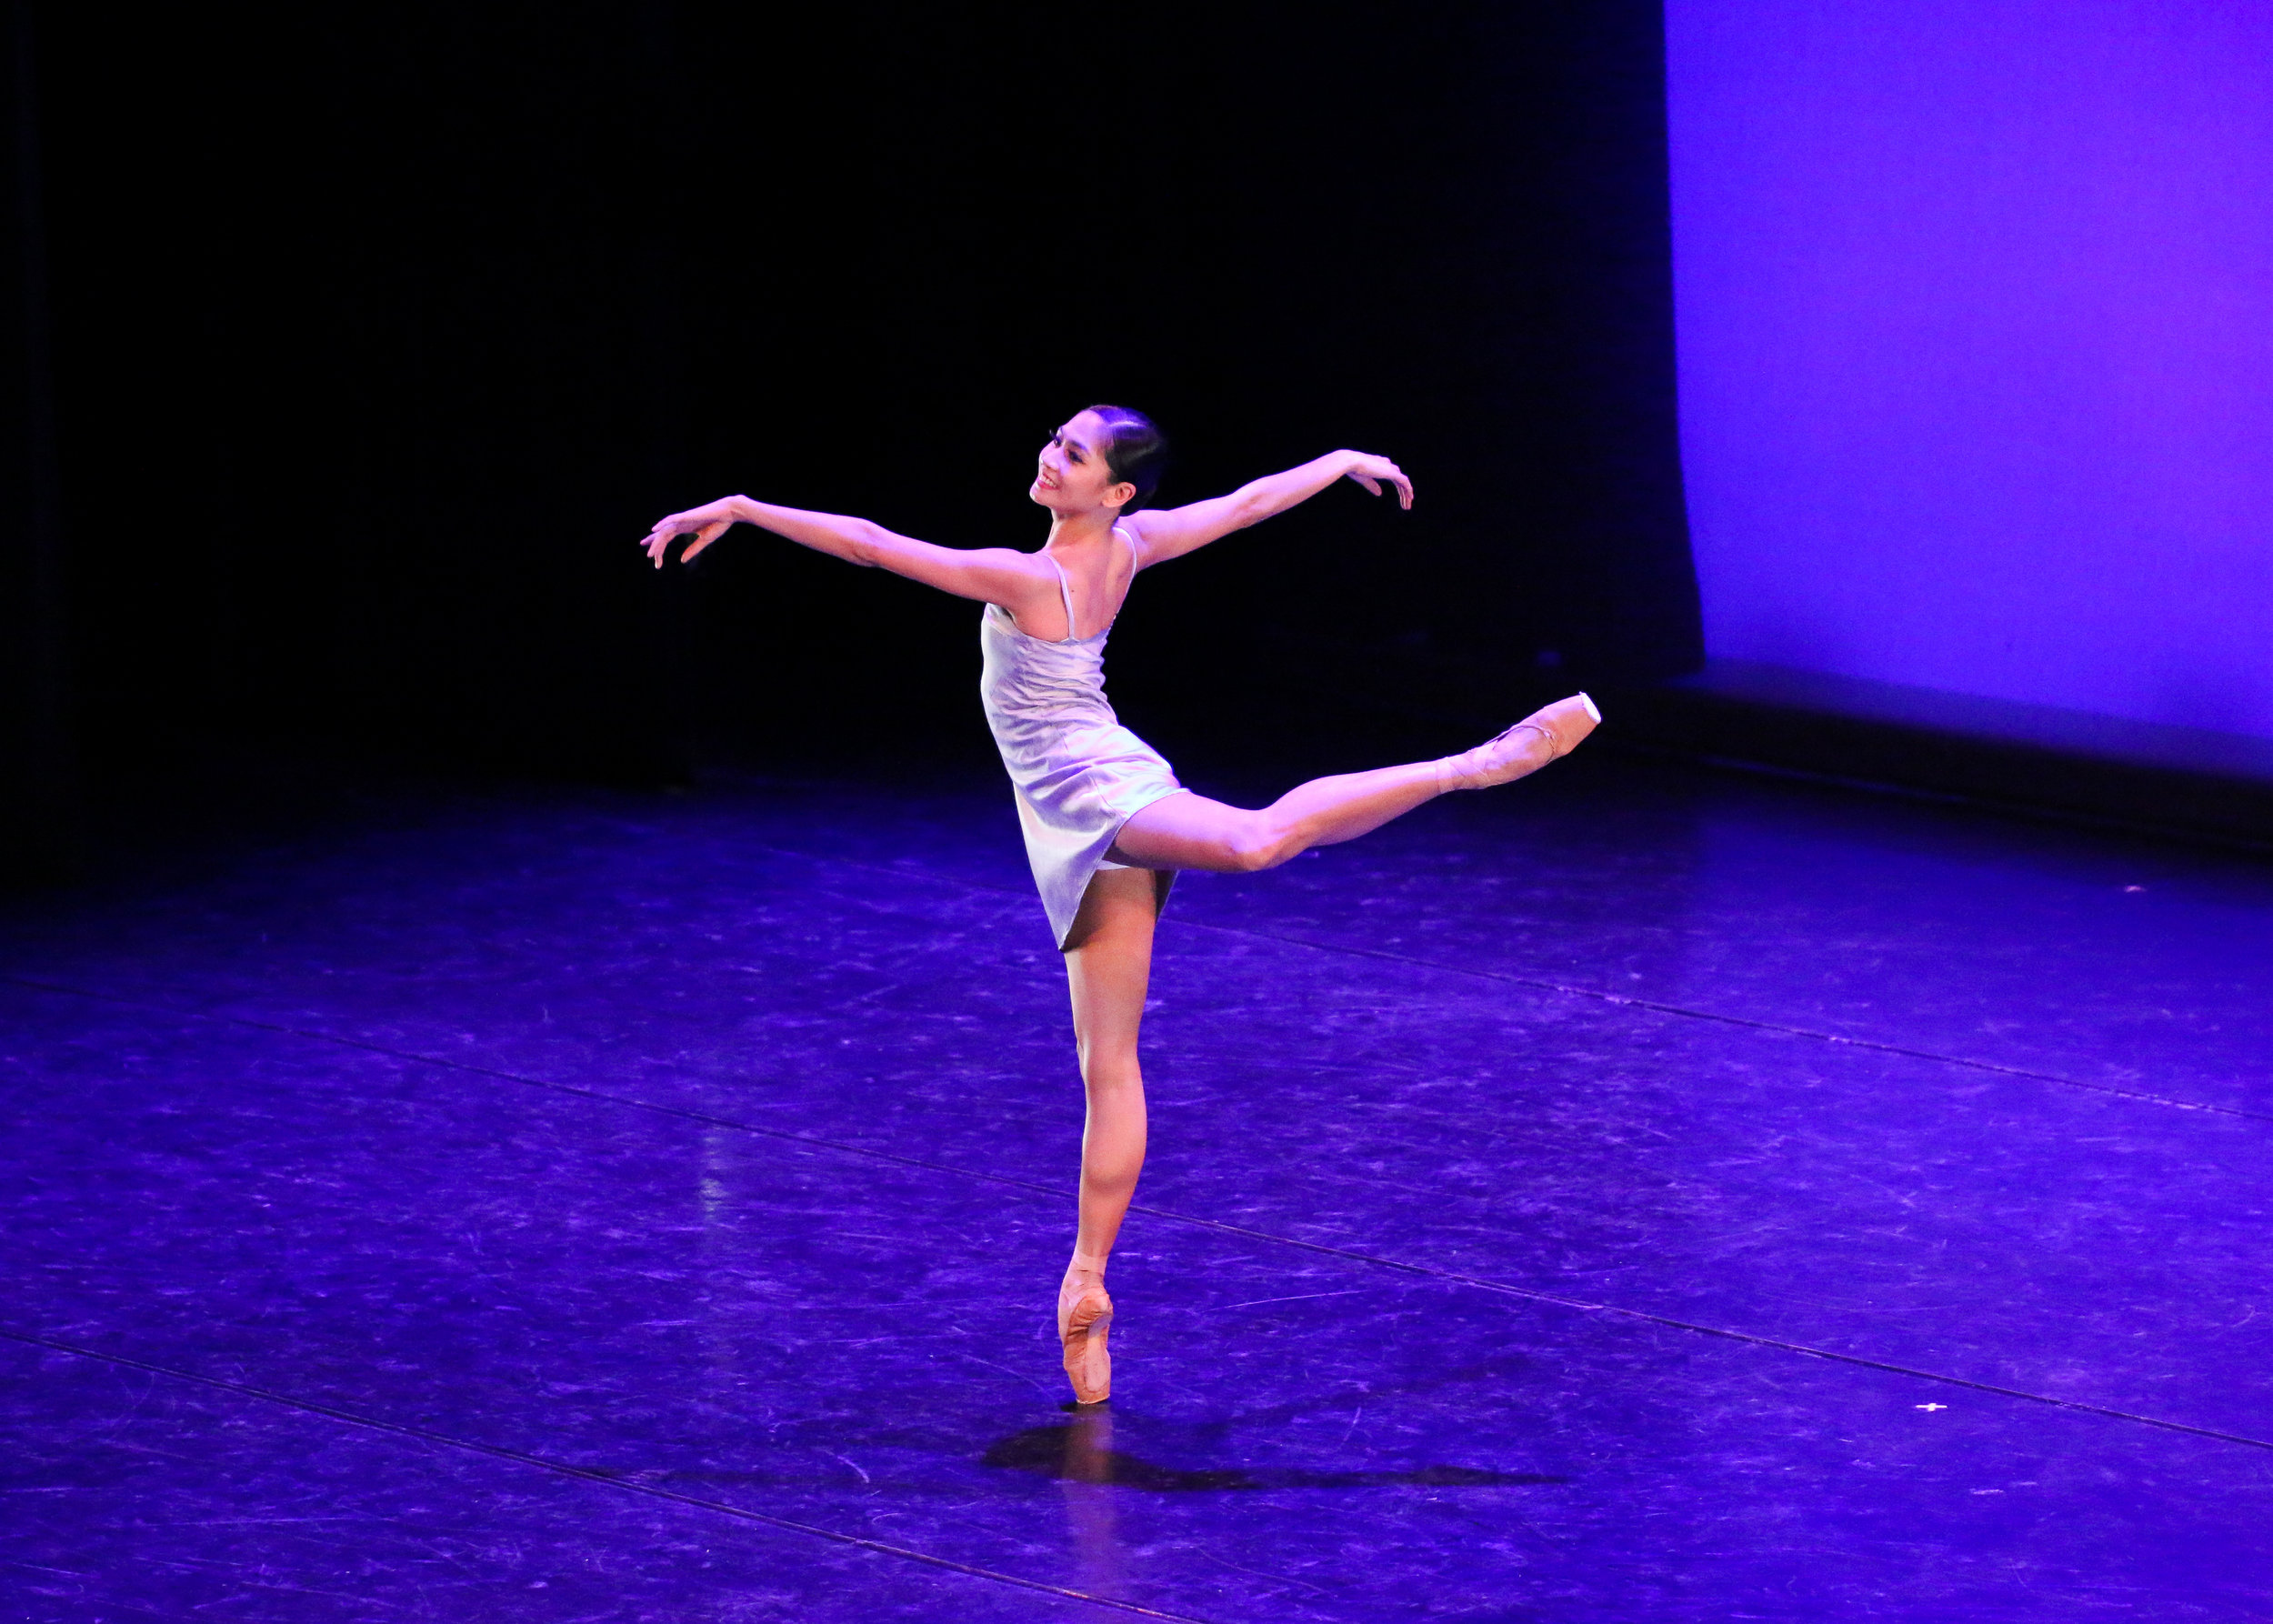 Christine Rocas, An Evening of Ballet Stars, Photo by Carly Vanderheyden